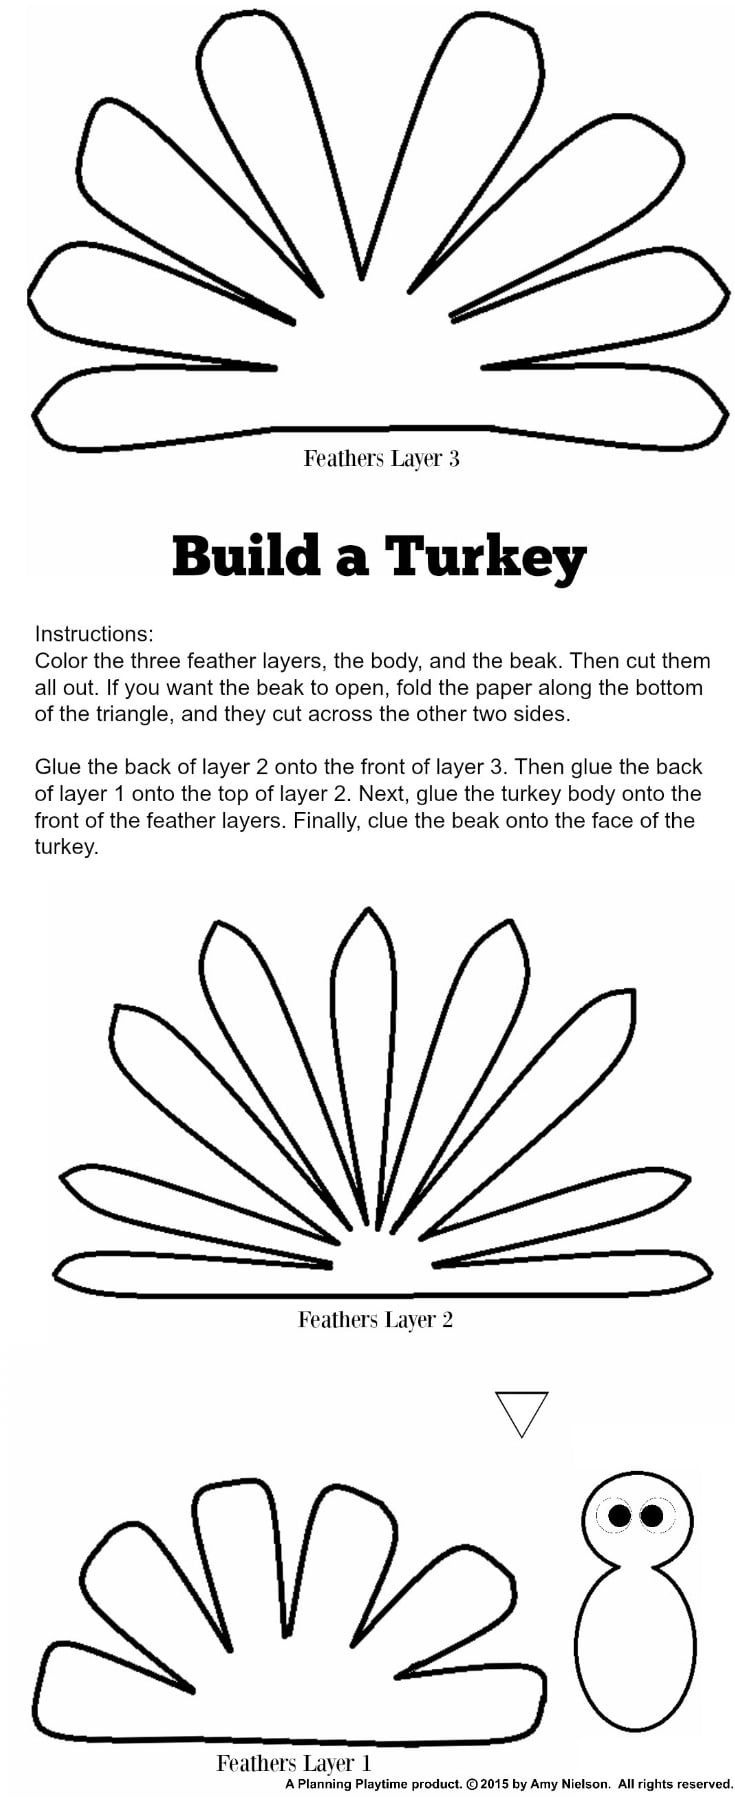 Cute Turkey Craft W/ Free Printable Template | Craft Ideas | Turkey - Free Printable Turkey Craft